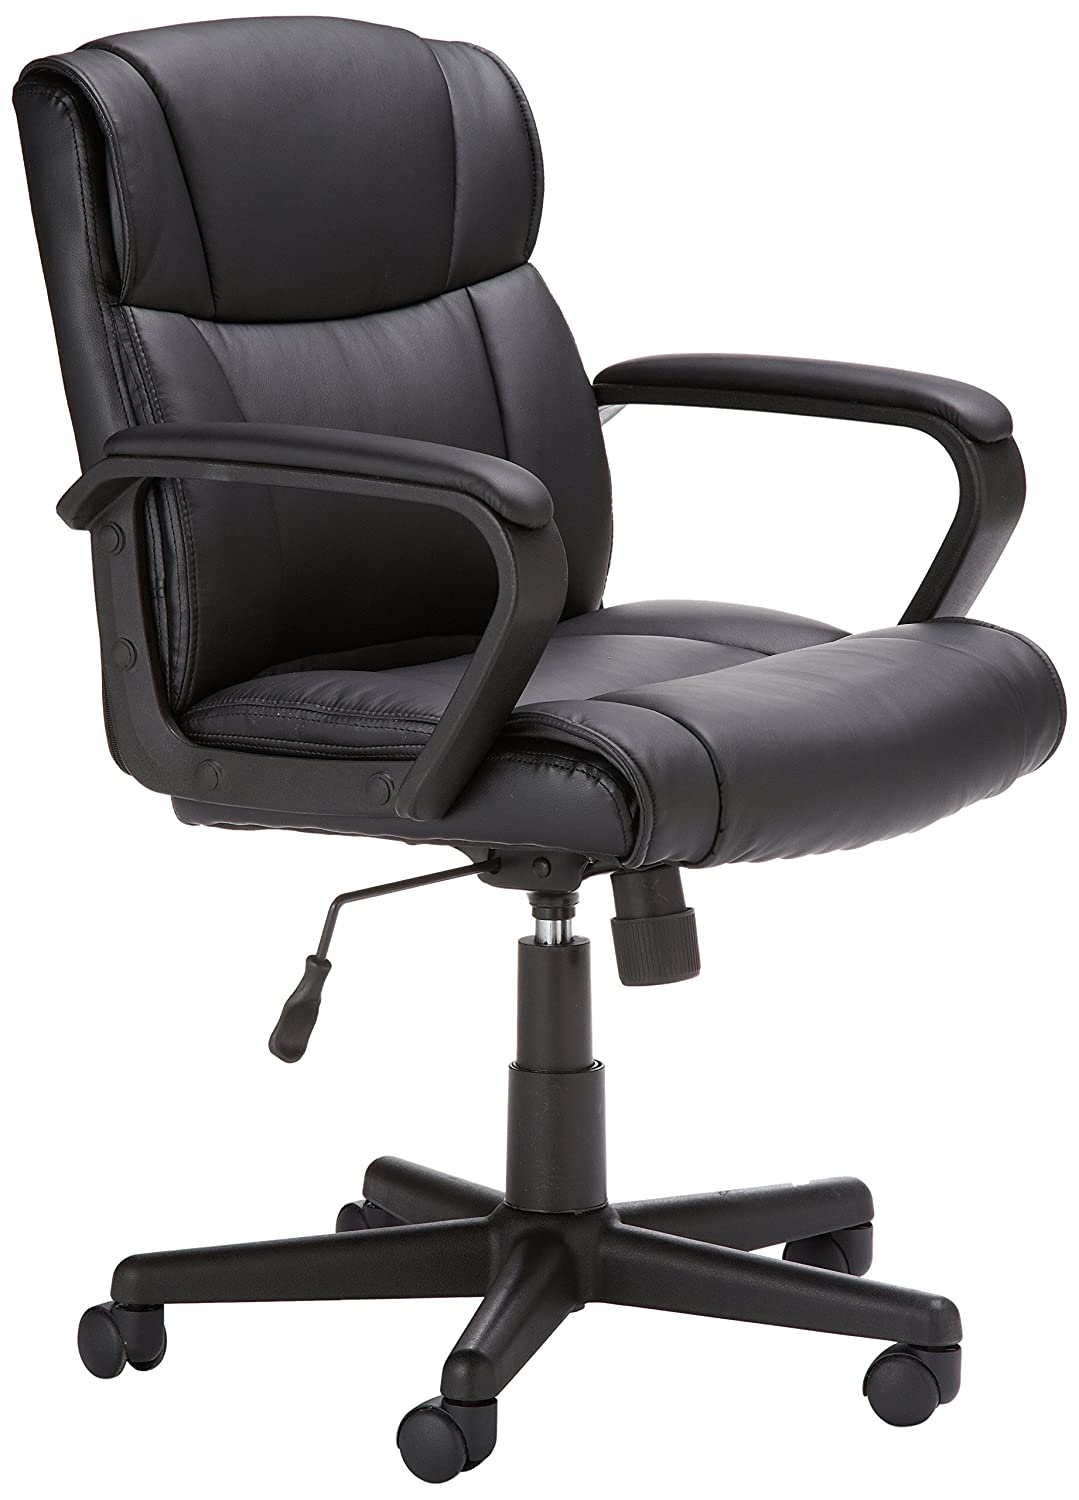 Executive Chairs Best Office Chairs For Lower Back Pain Detailed Review